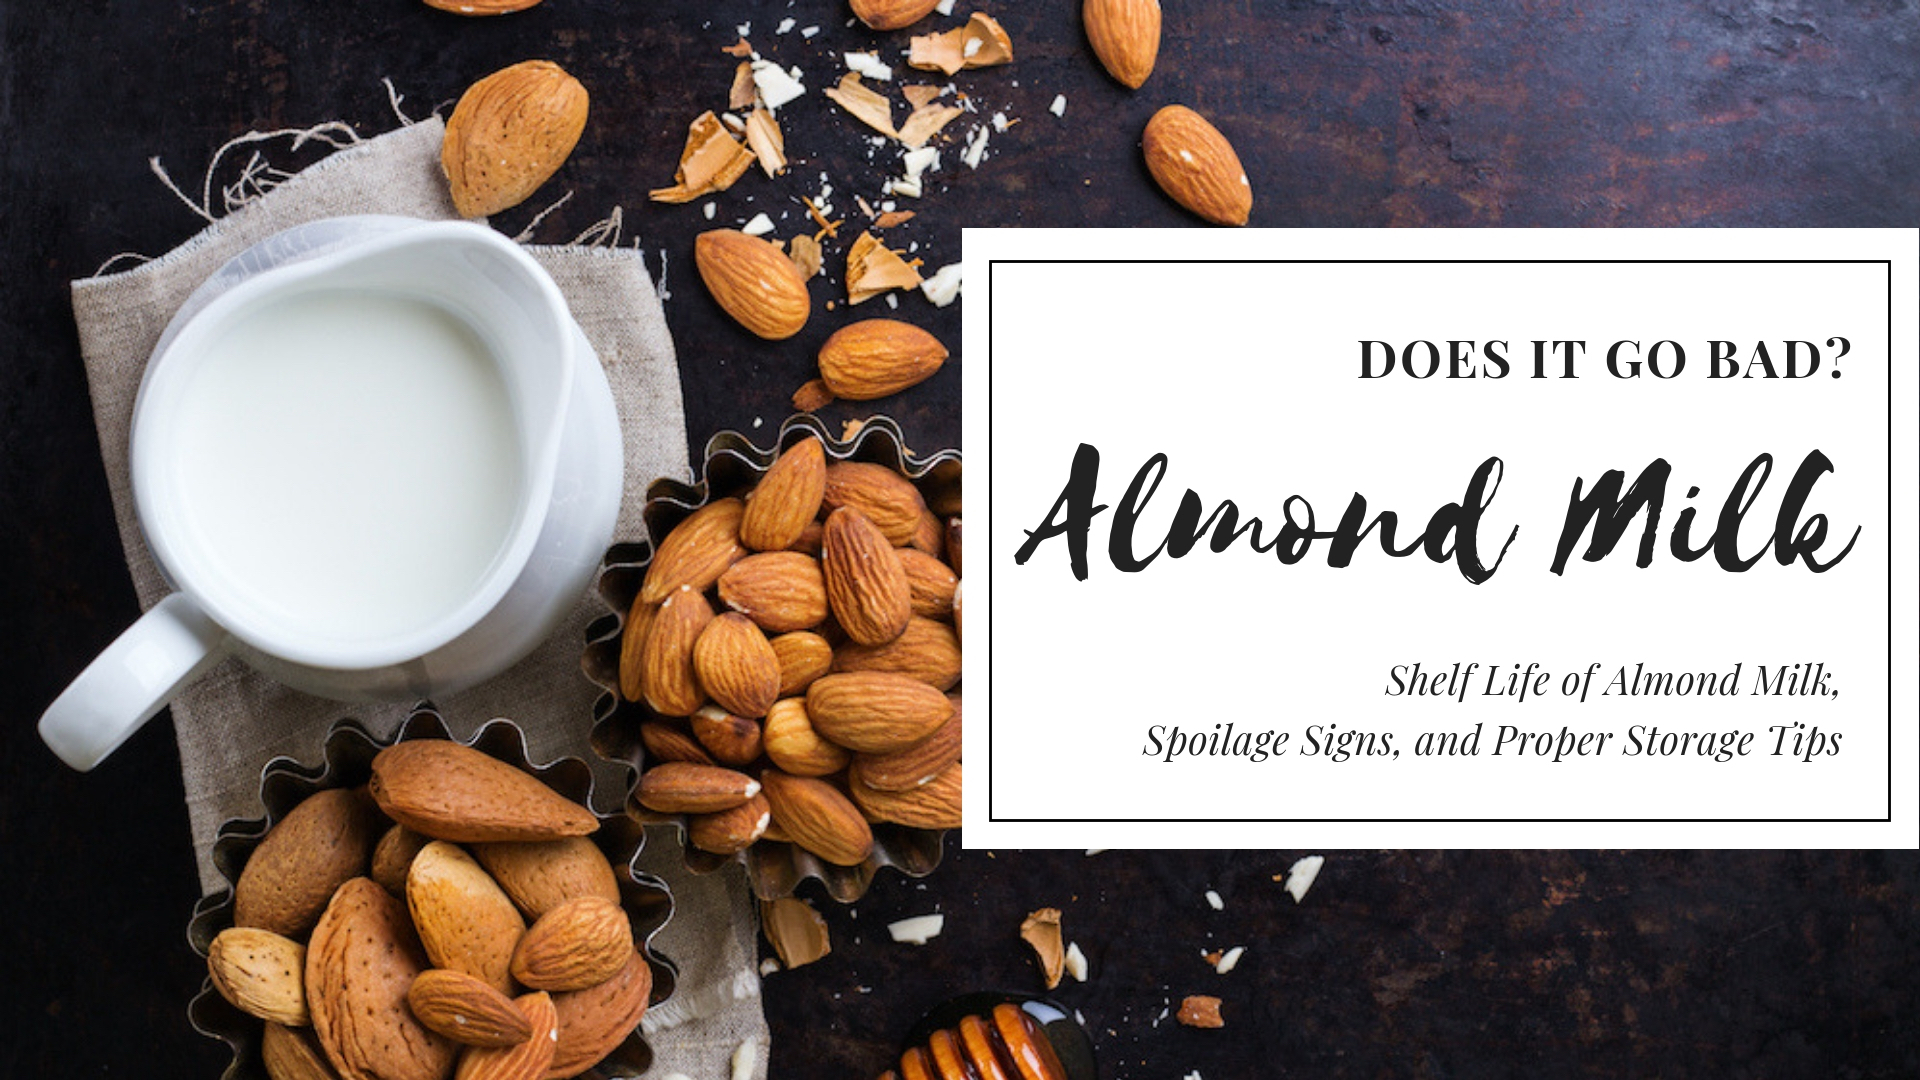 Does Almond Milk Go Bad